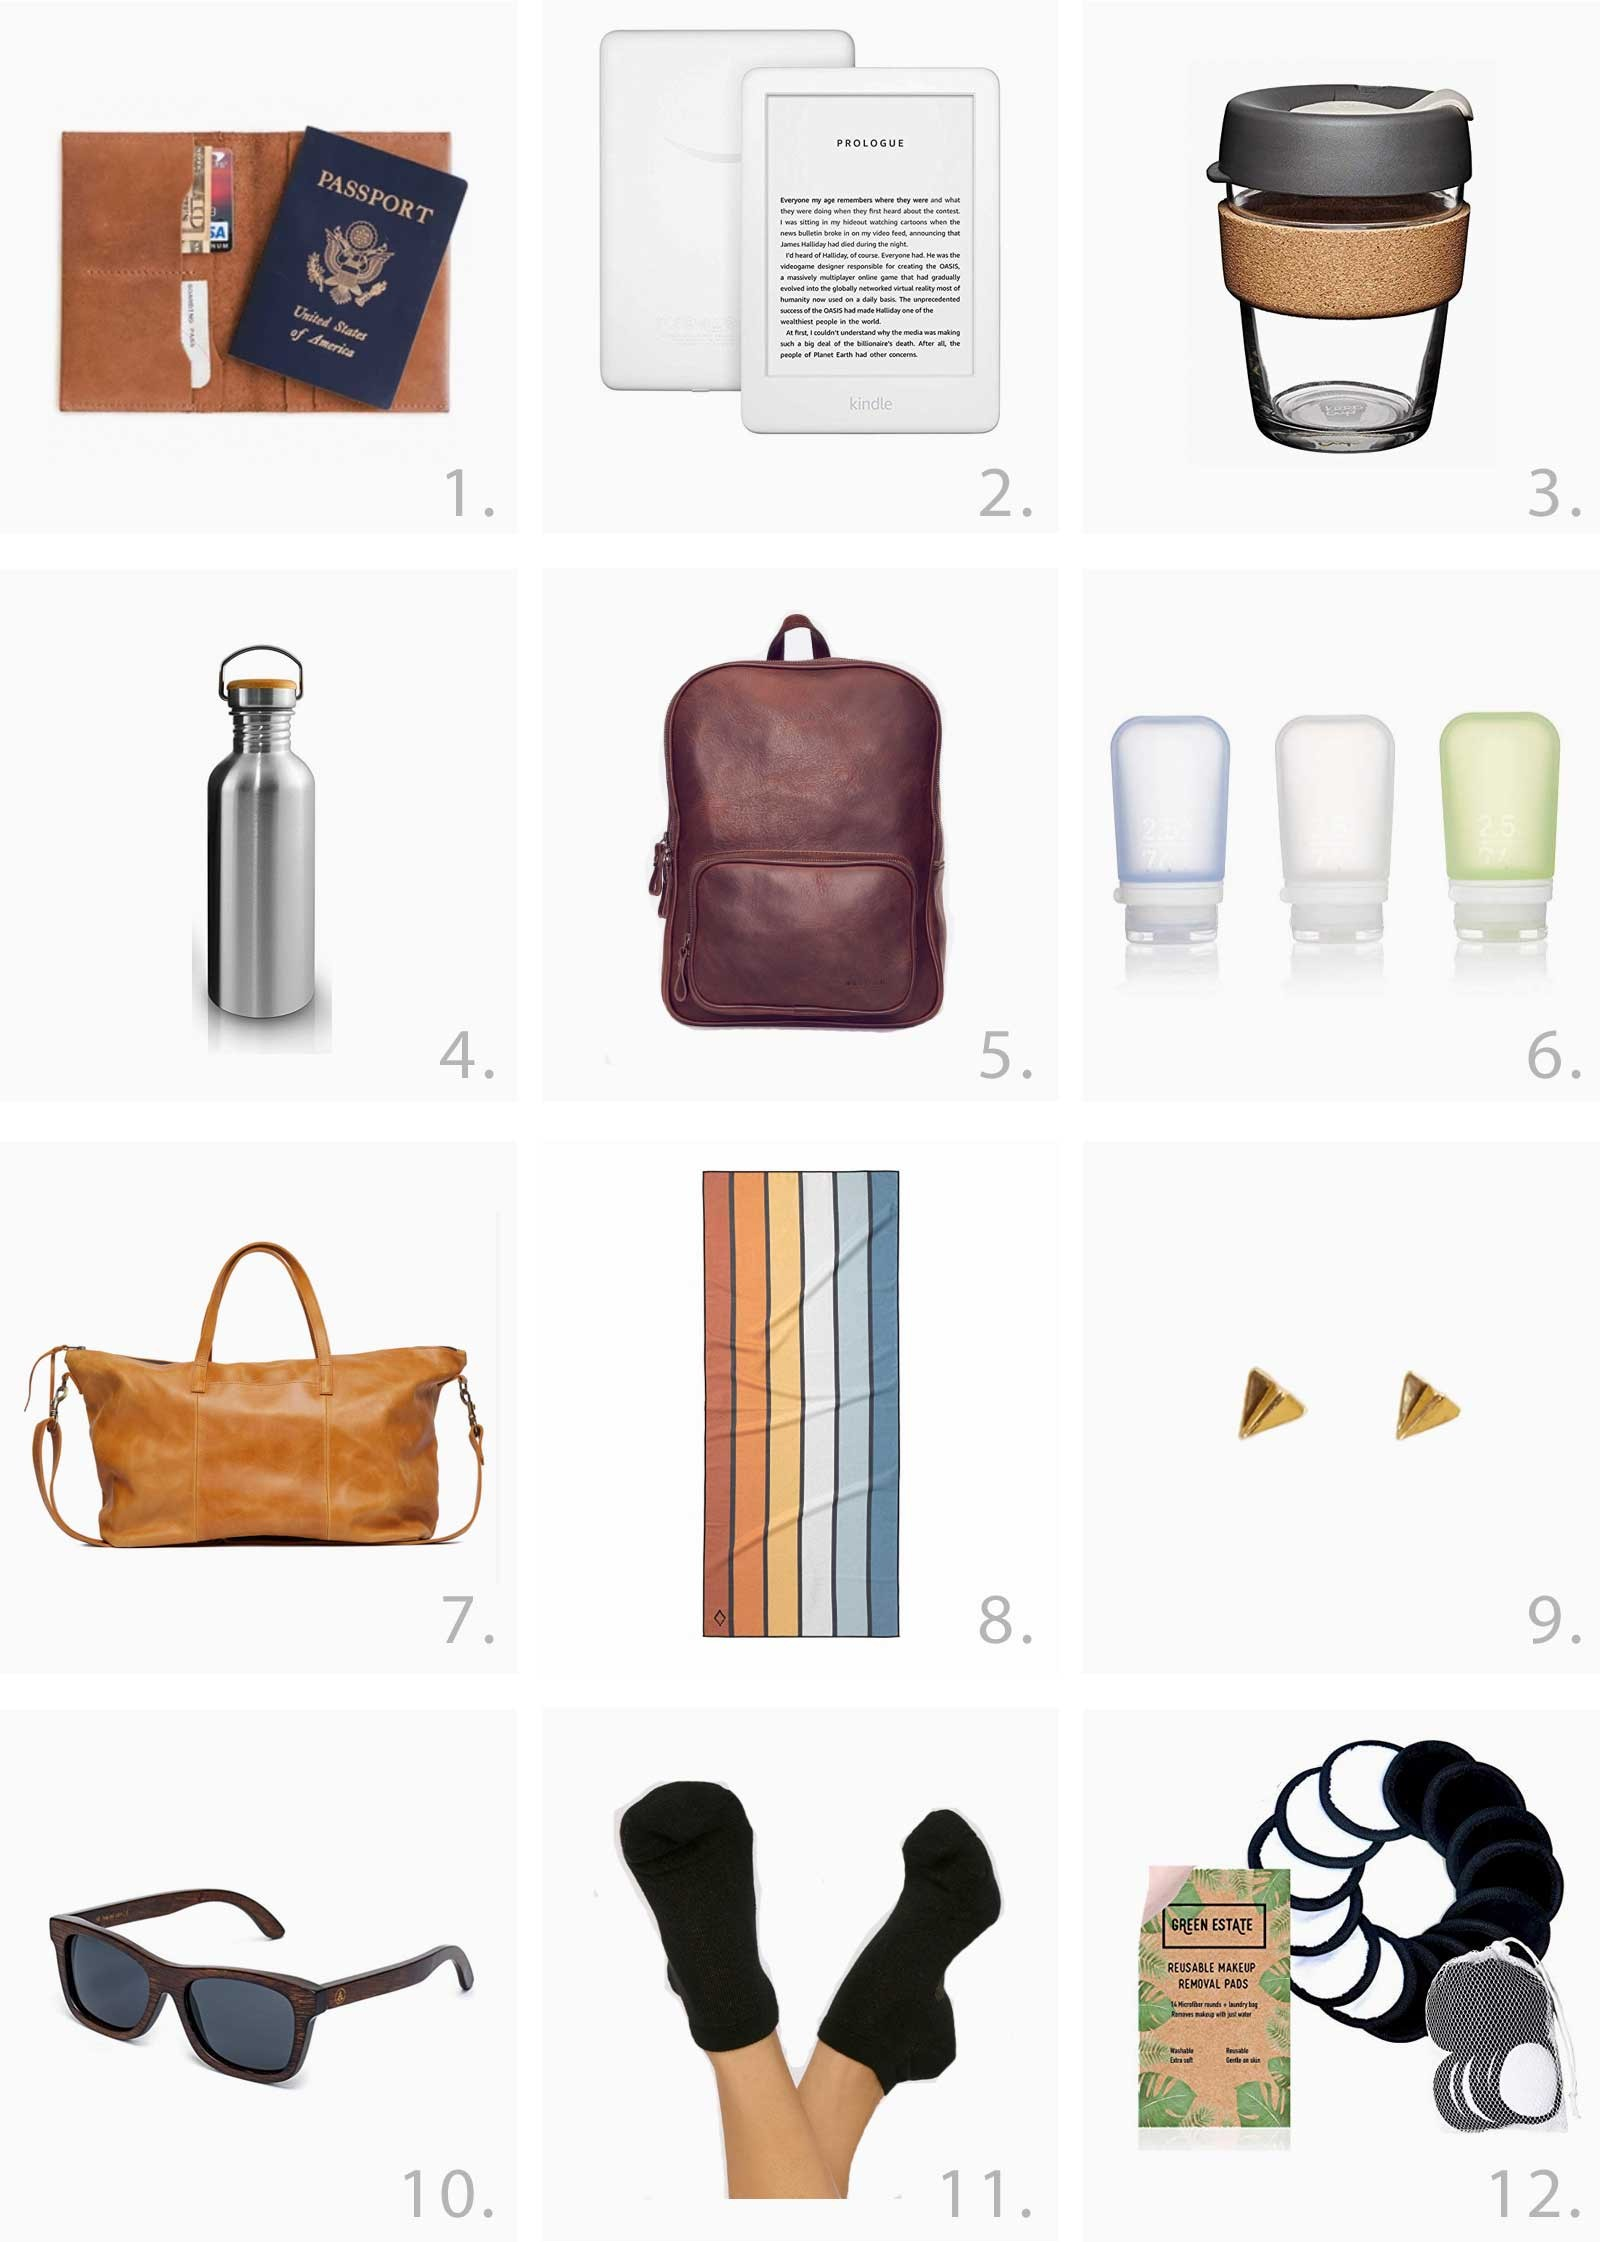 2019 Sustainable Gift Guide - Eco